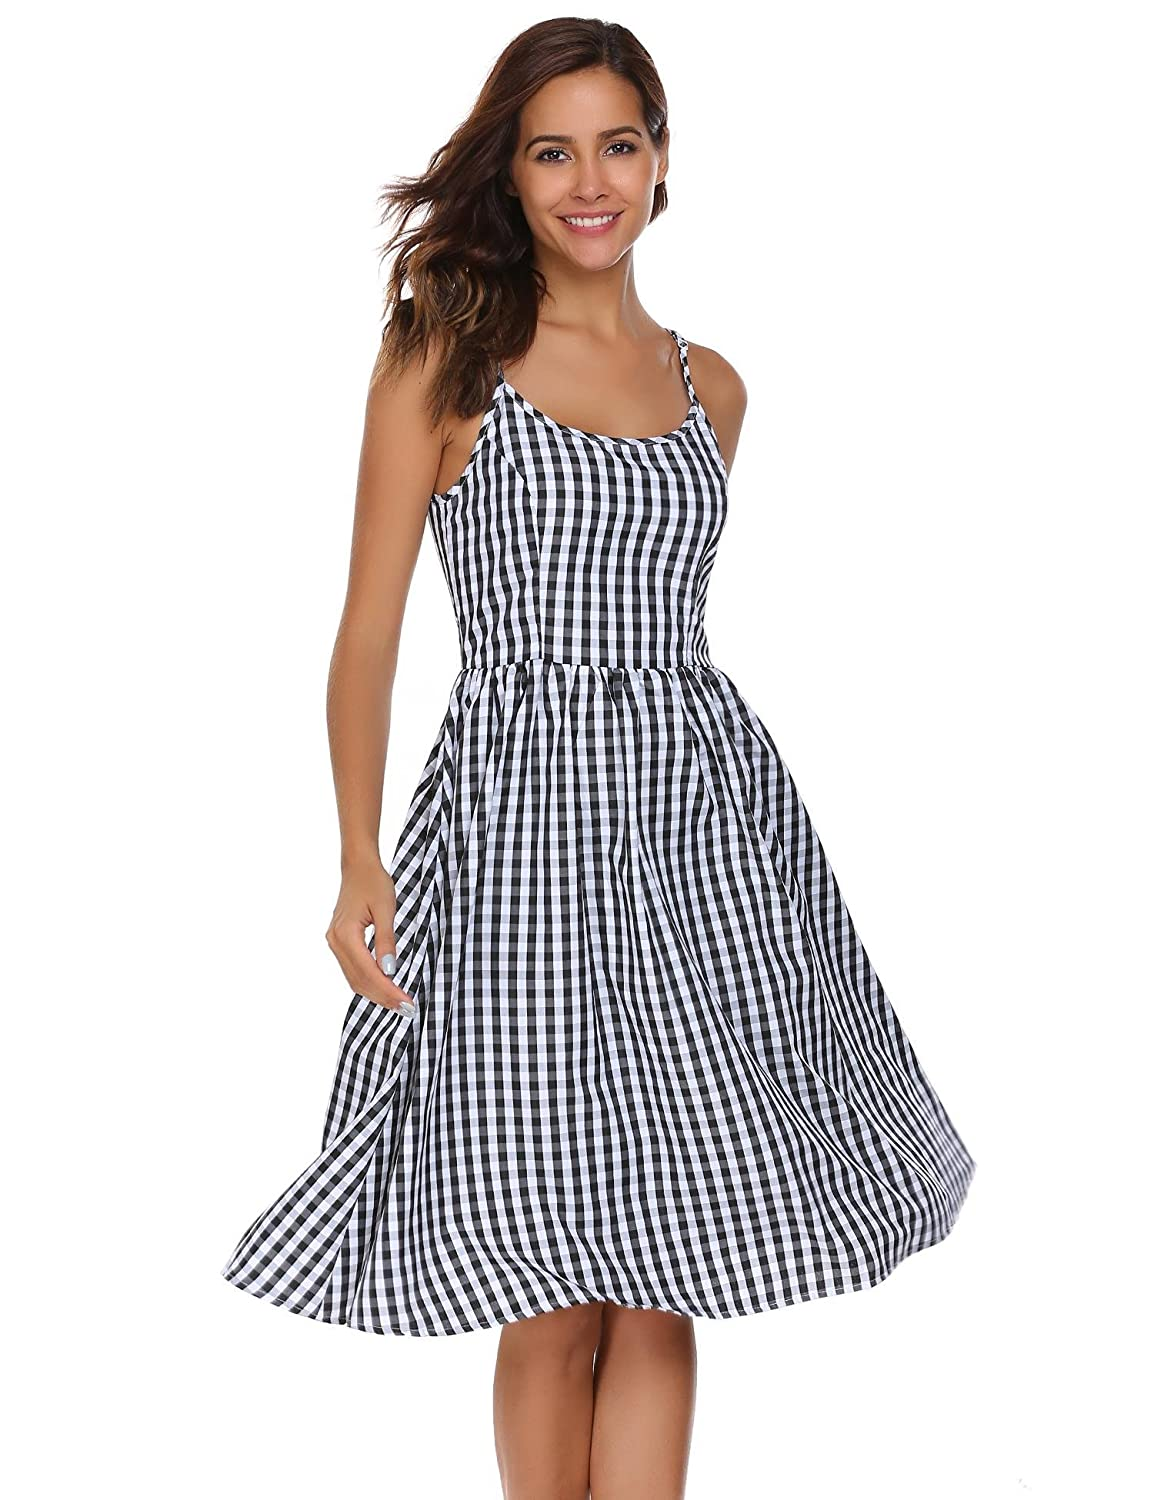 ACEVOG Women's Casual Style Sleeveless Spaghetti Straps Fit and Flare Plaid Dress